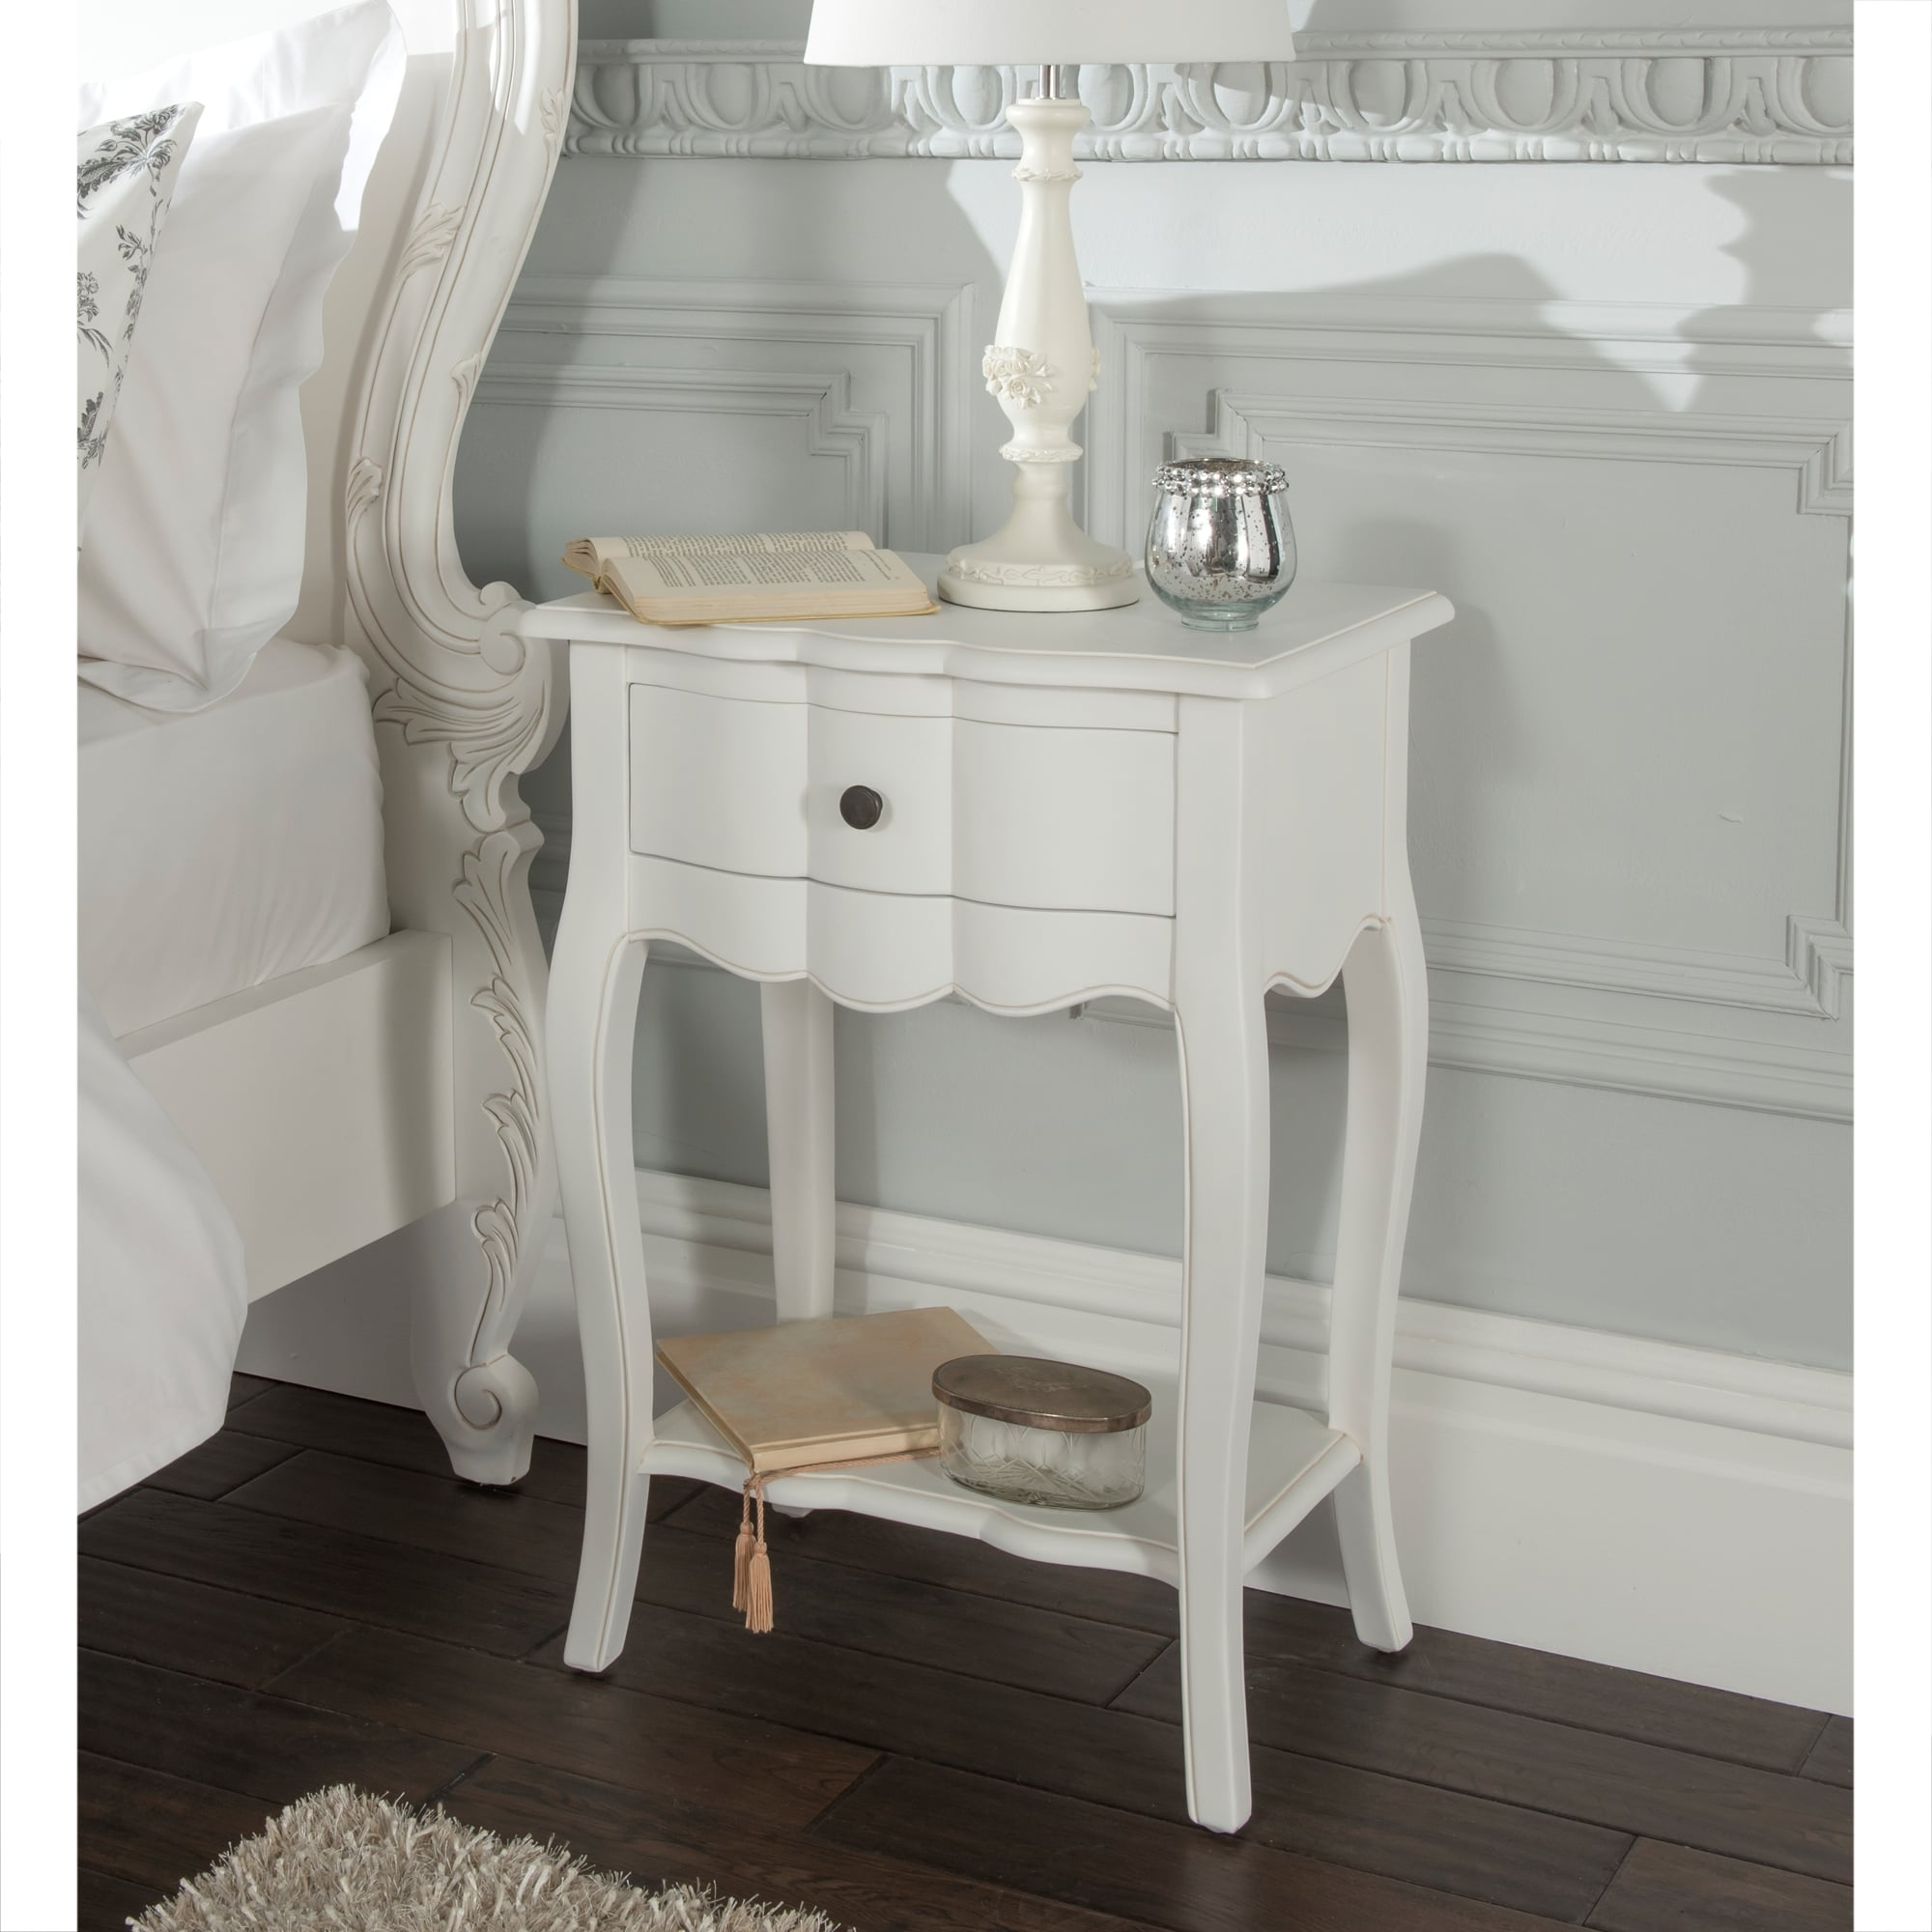 Delightful Upgrades 25 Creative Bedside Lighting Ideas: Estelle Antique French Style Bedside Table